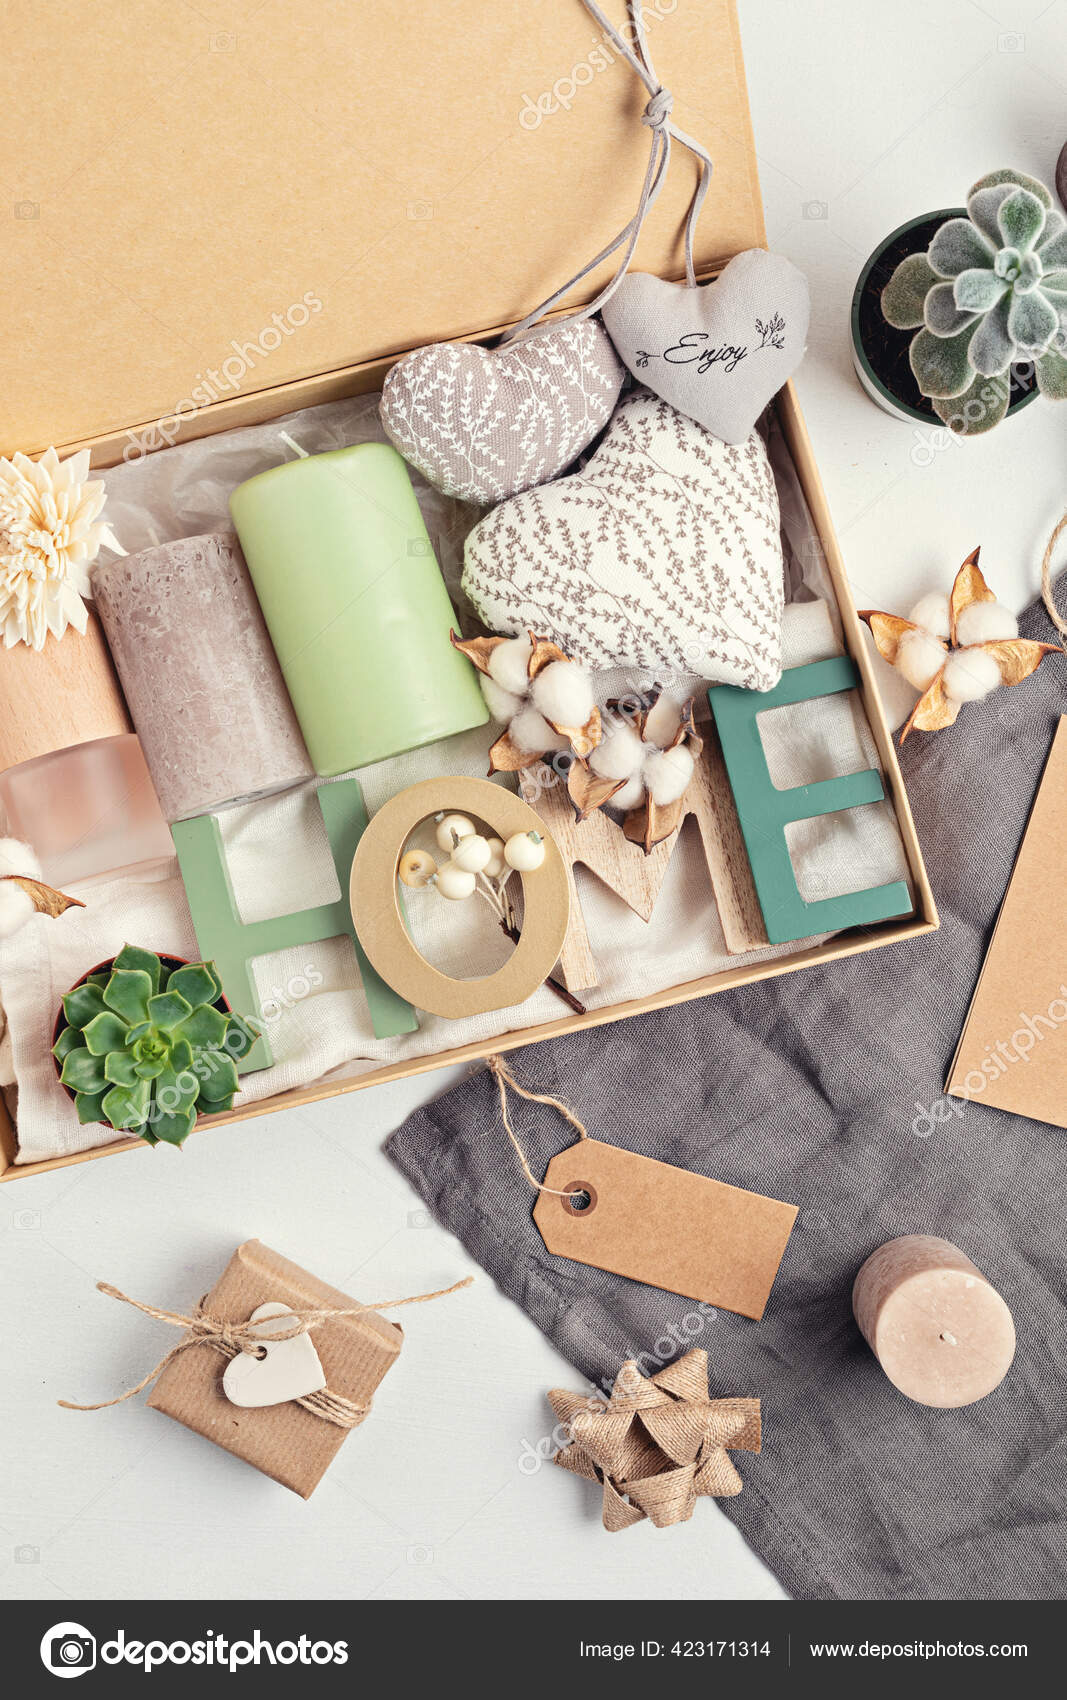 Preparing Care Package Seasonal Gift Box Candles Succulent Interior Scent Stock Photo Image By C Netrun78 423171314